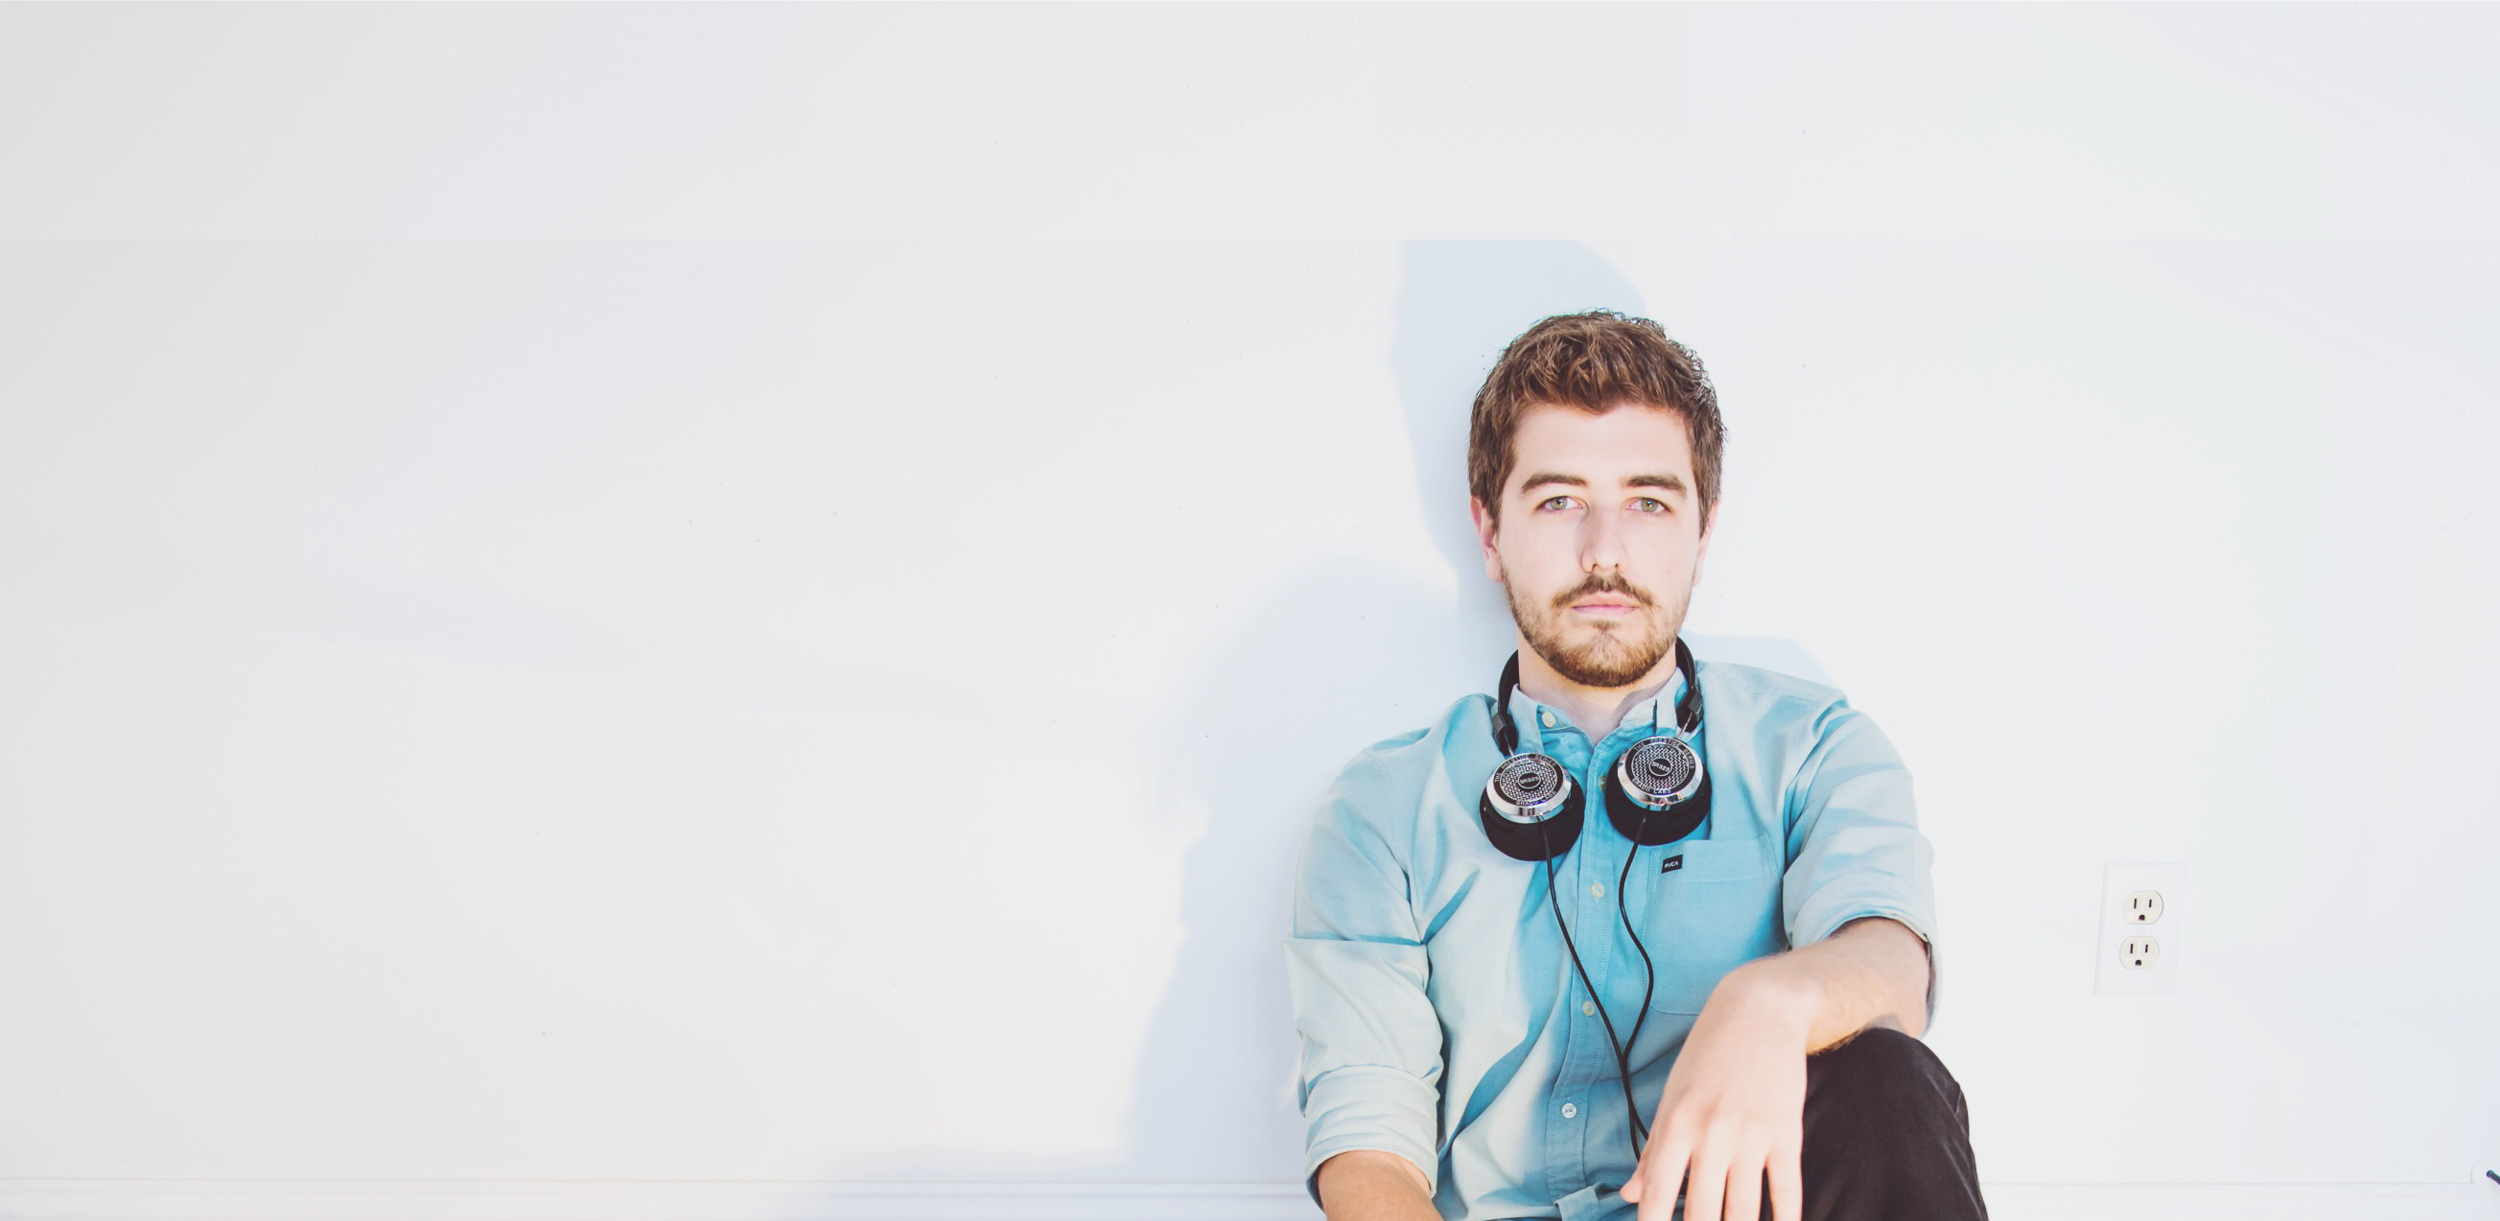 Jonathan-Grado-washed-For-Cover.png